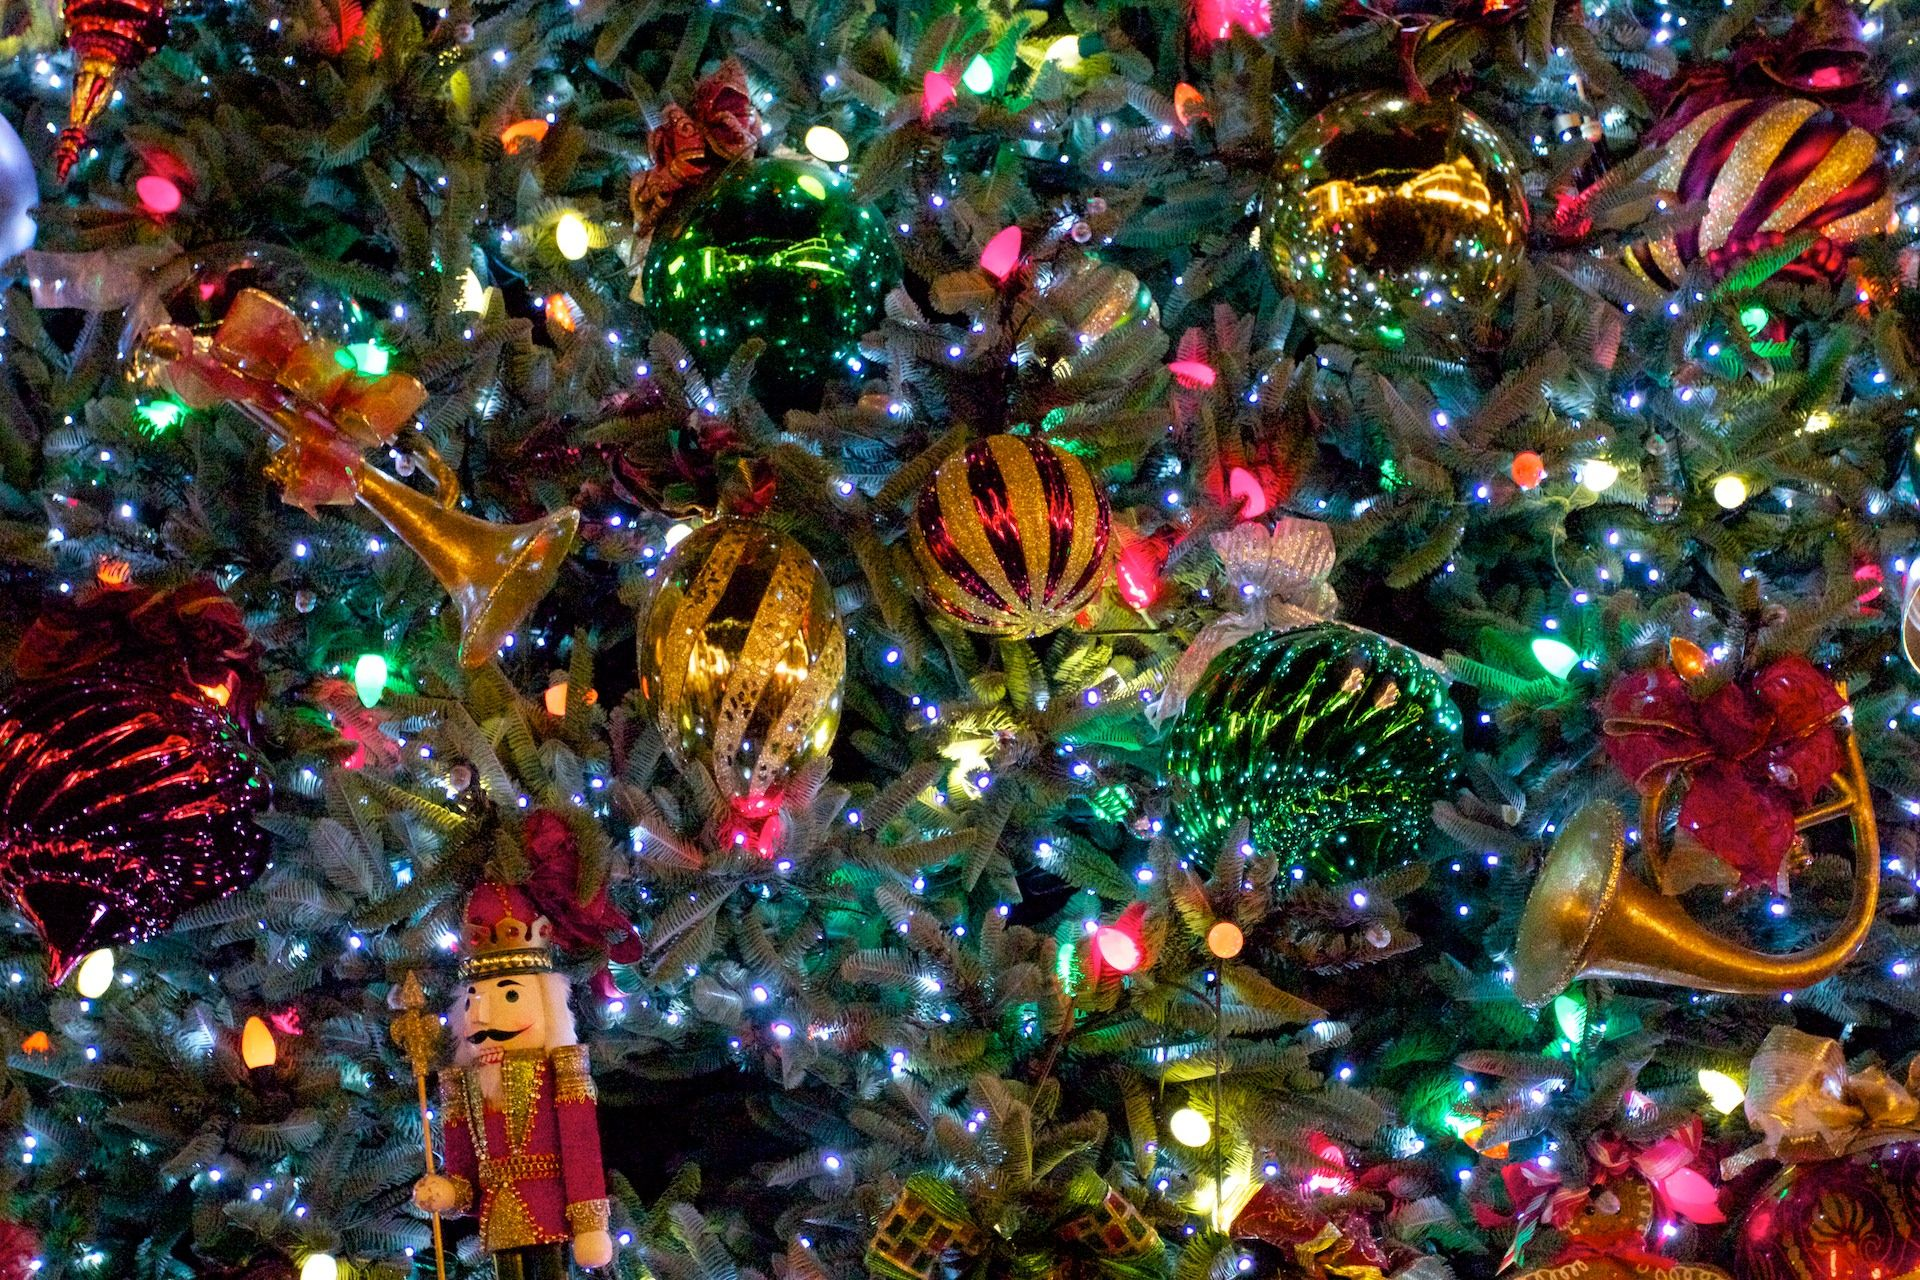 Ornaments On The Tree Christmas Tree Images Christmas Tree Background Christmas Tree Wallpaper